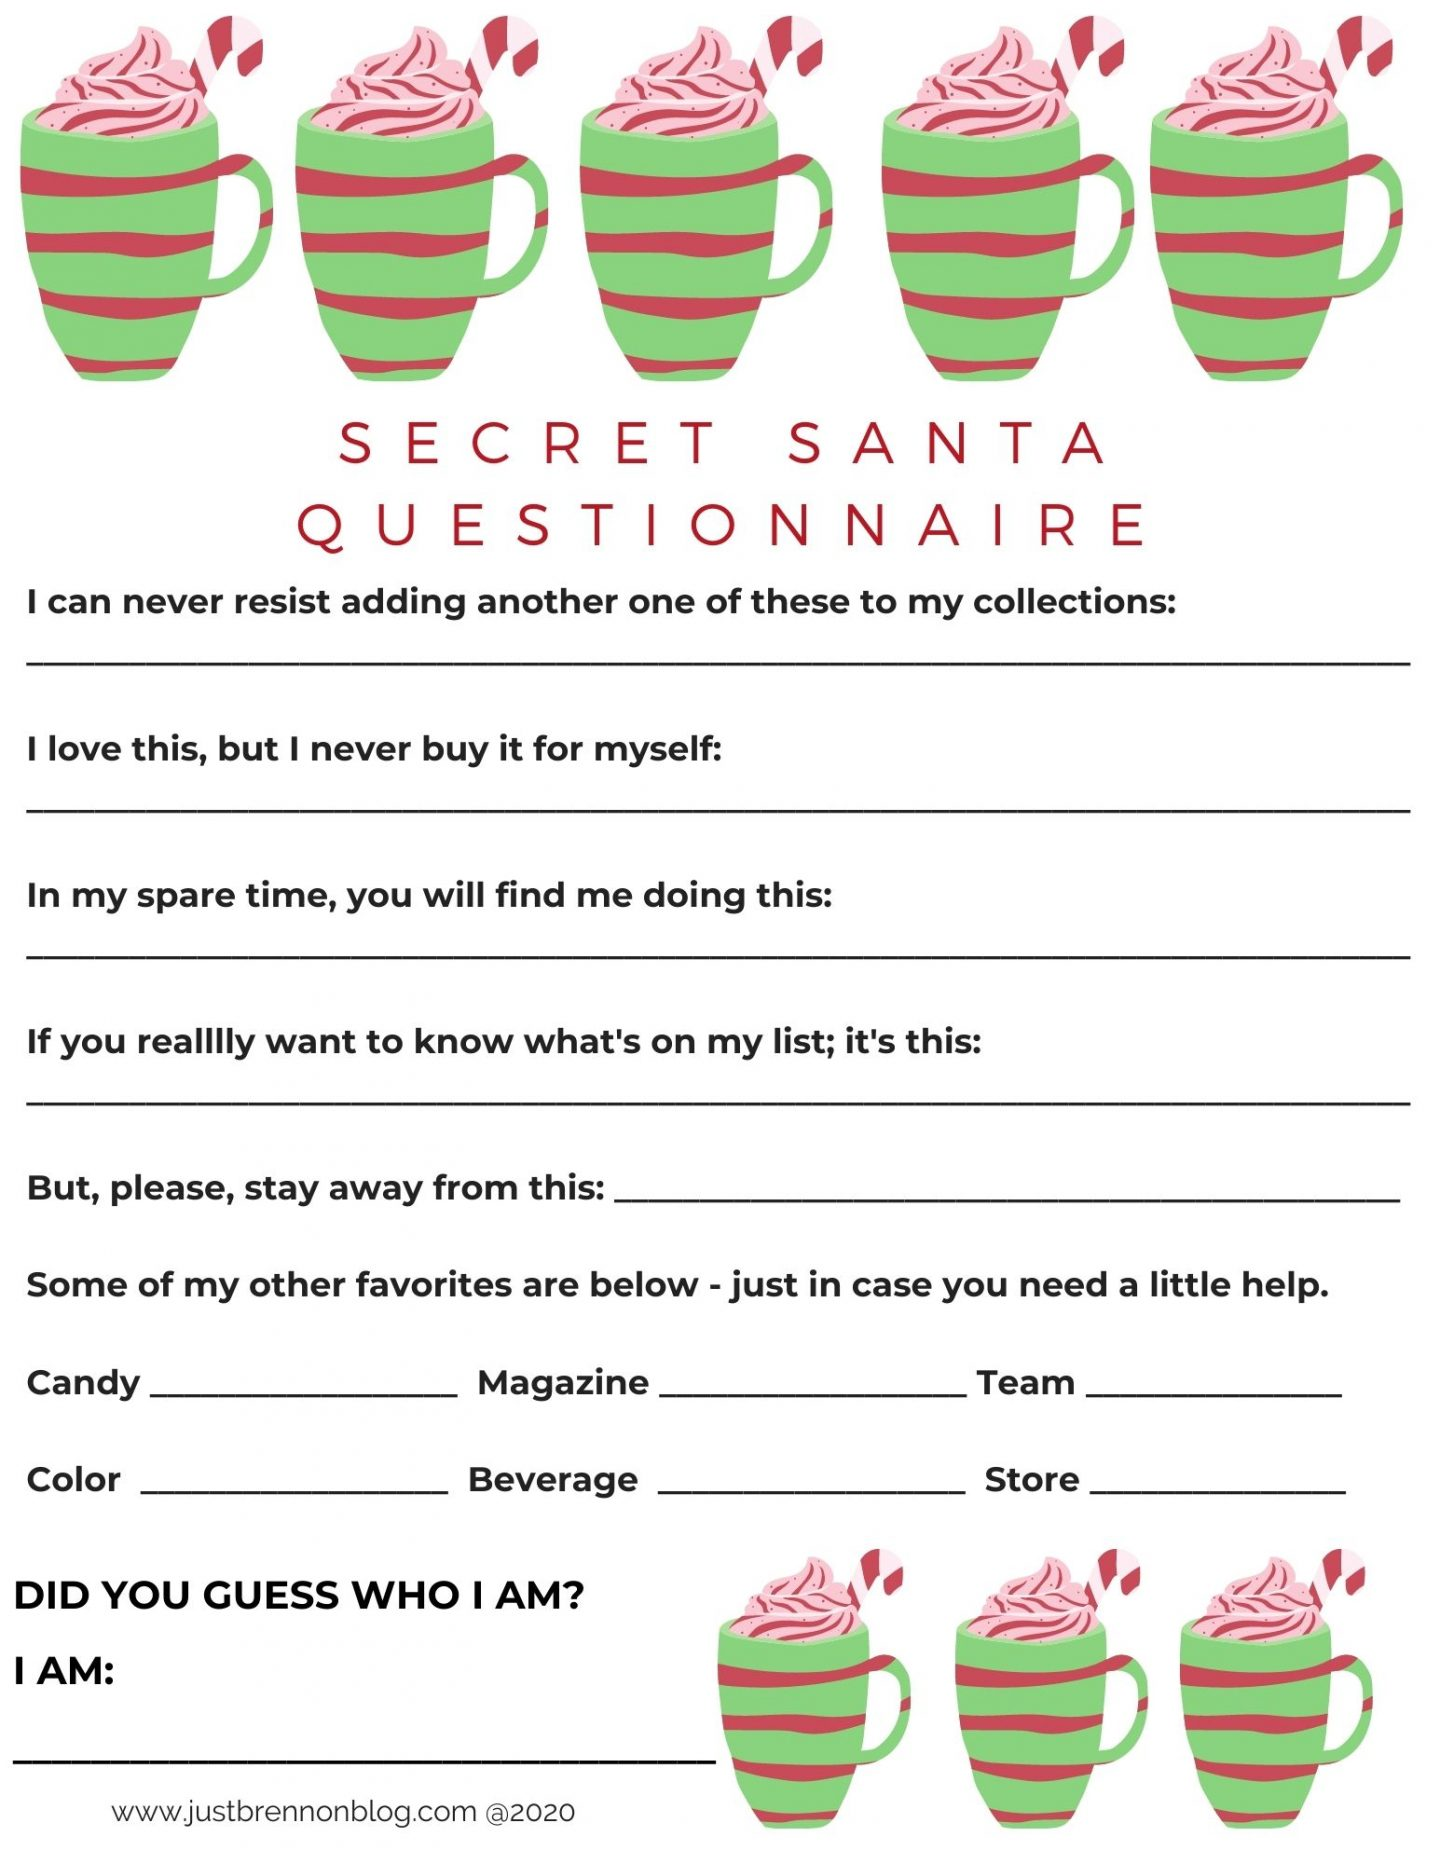 Free Downloads Secret Santa Questionnaires Since 2017 Just Brennon Blog